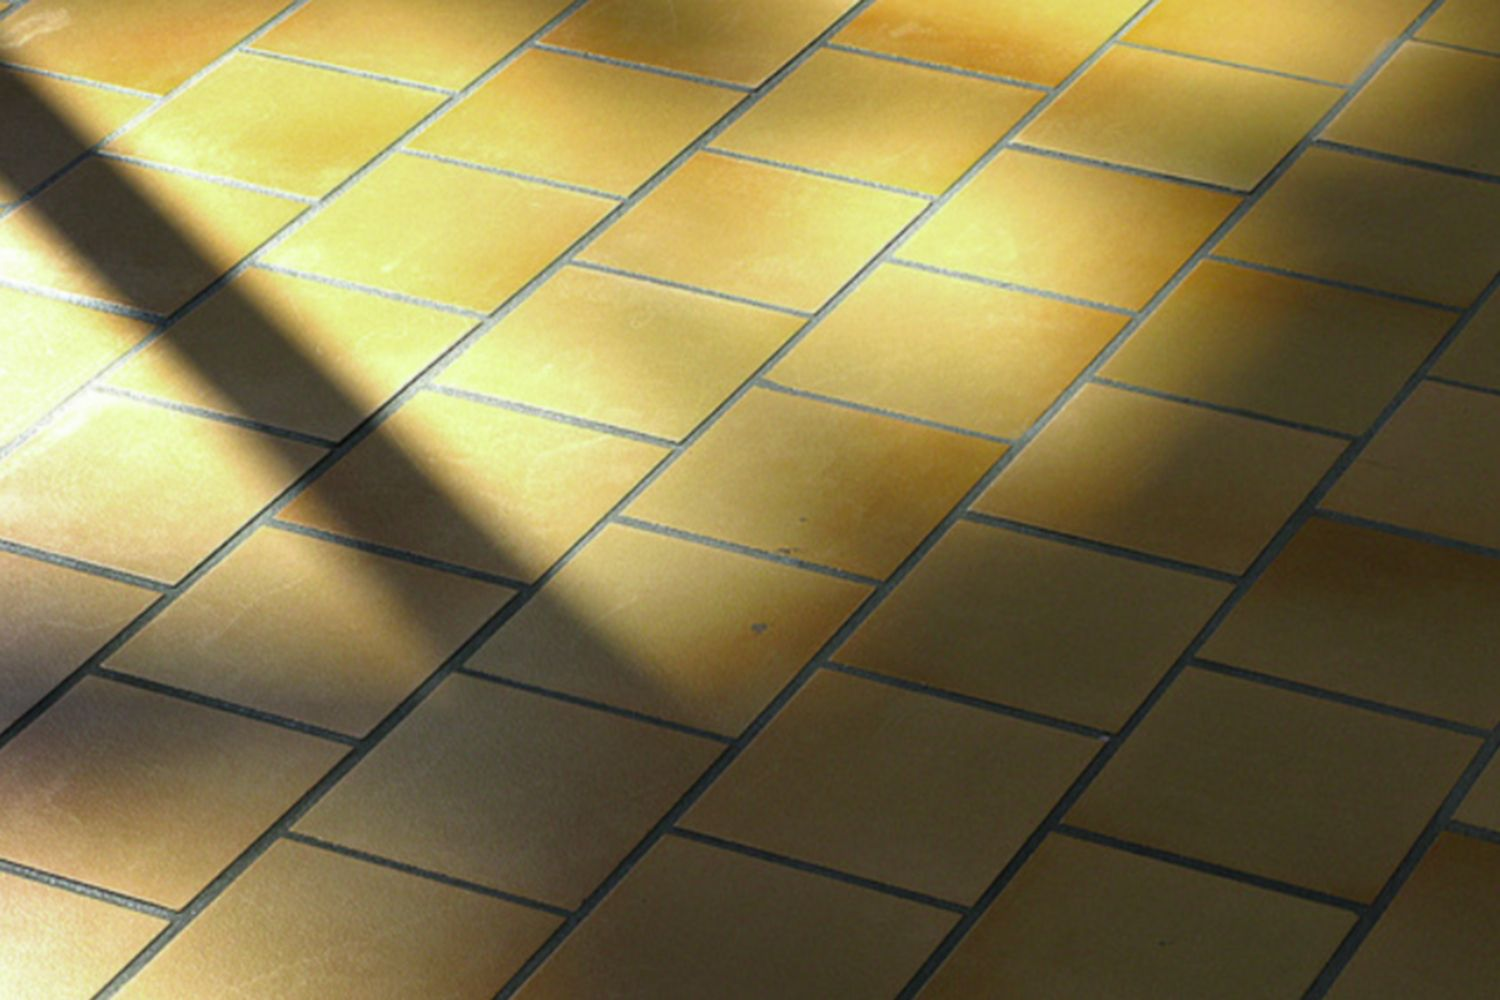 PEI Ratings - Your Guide To Figuring Out Tile Installation Areas